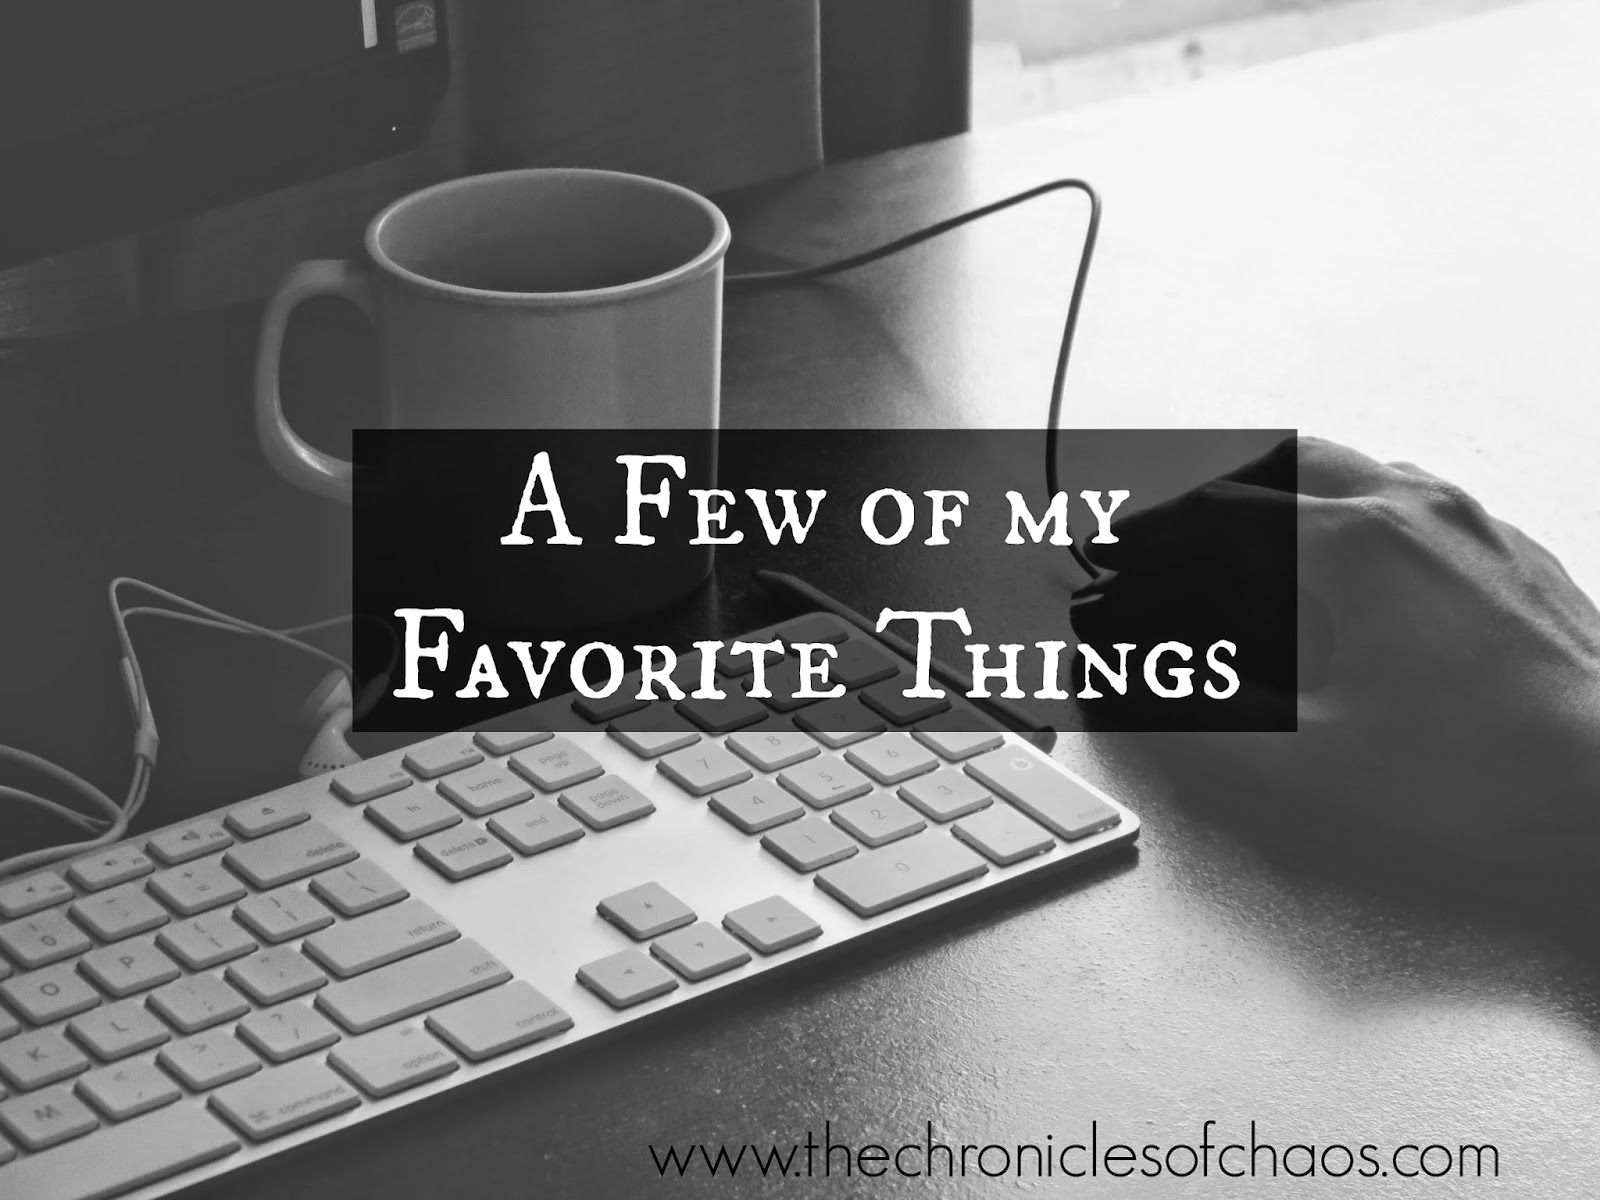 A Few of My Favorite Things; www.thechroniclesofchaos.com